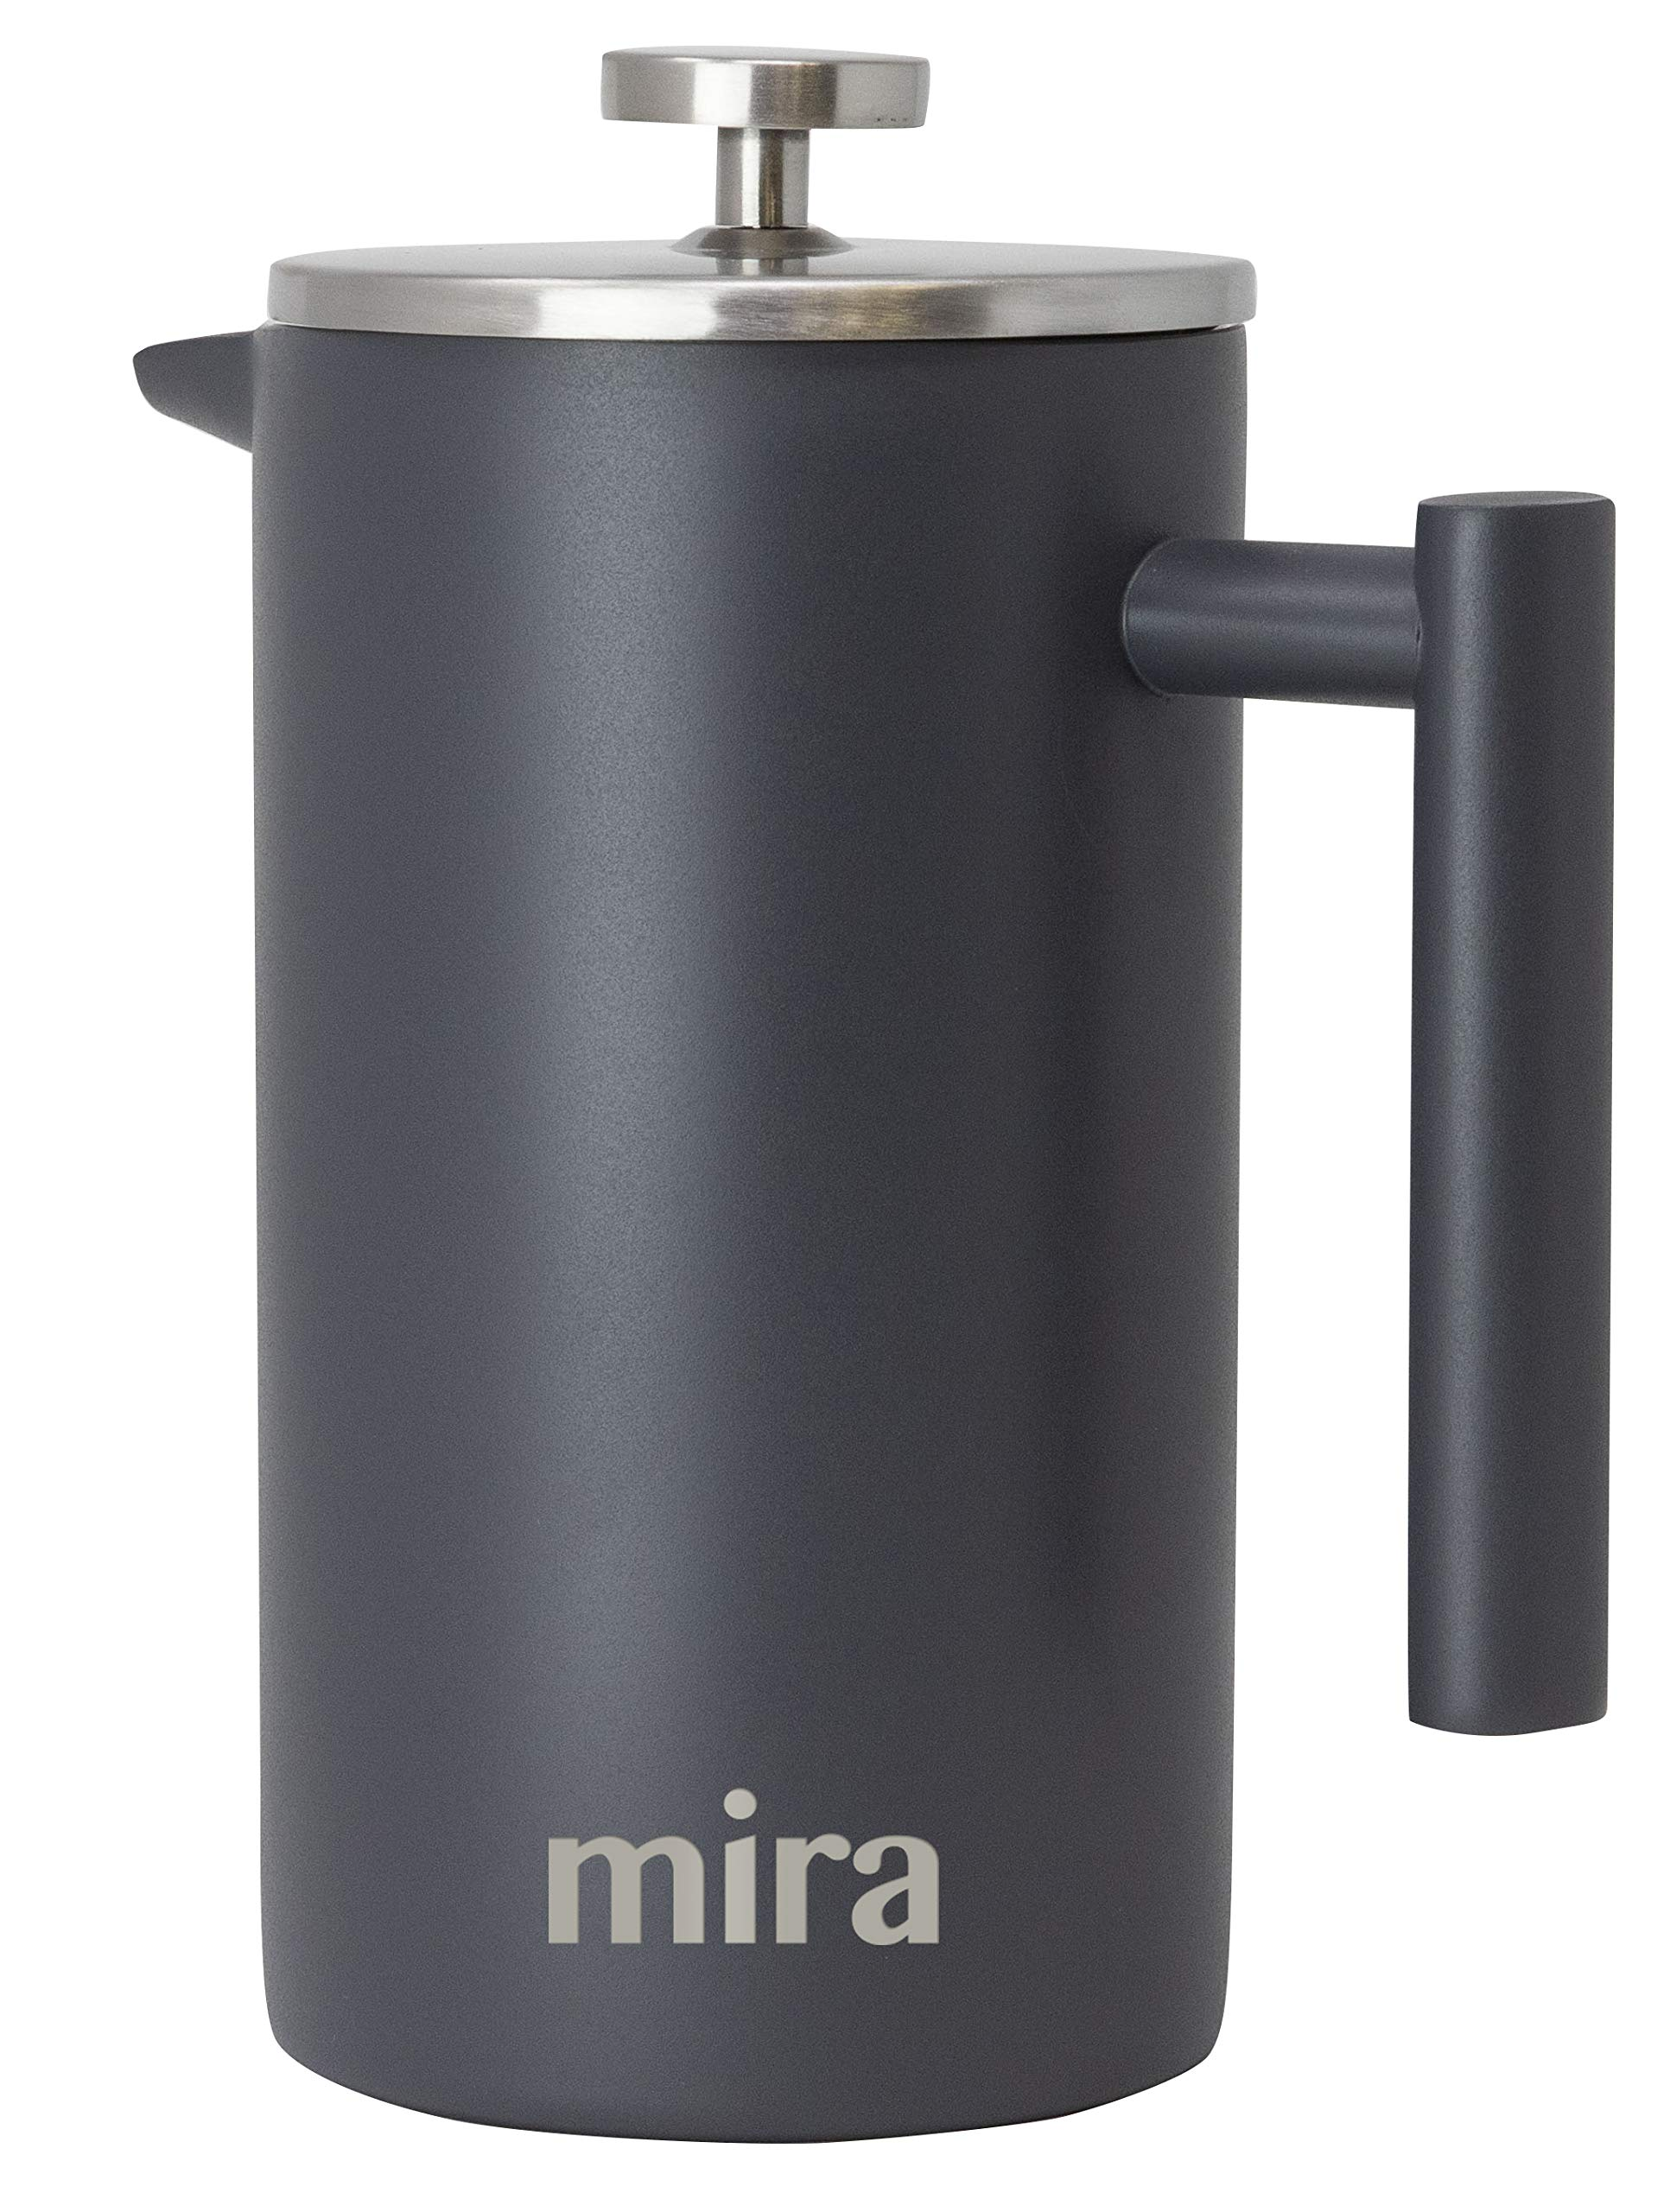 MIRA 34 oz Stainless Steel French Press Coffee Maker with 3 Extra Filters | Double Walled Insulated Coffee & Tea Brewer Pot & Maker | Keeps Brewed Coffee or Tea Hot | 1000 ml (Gray)